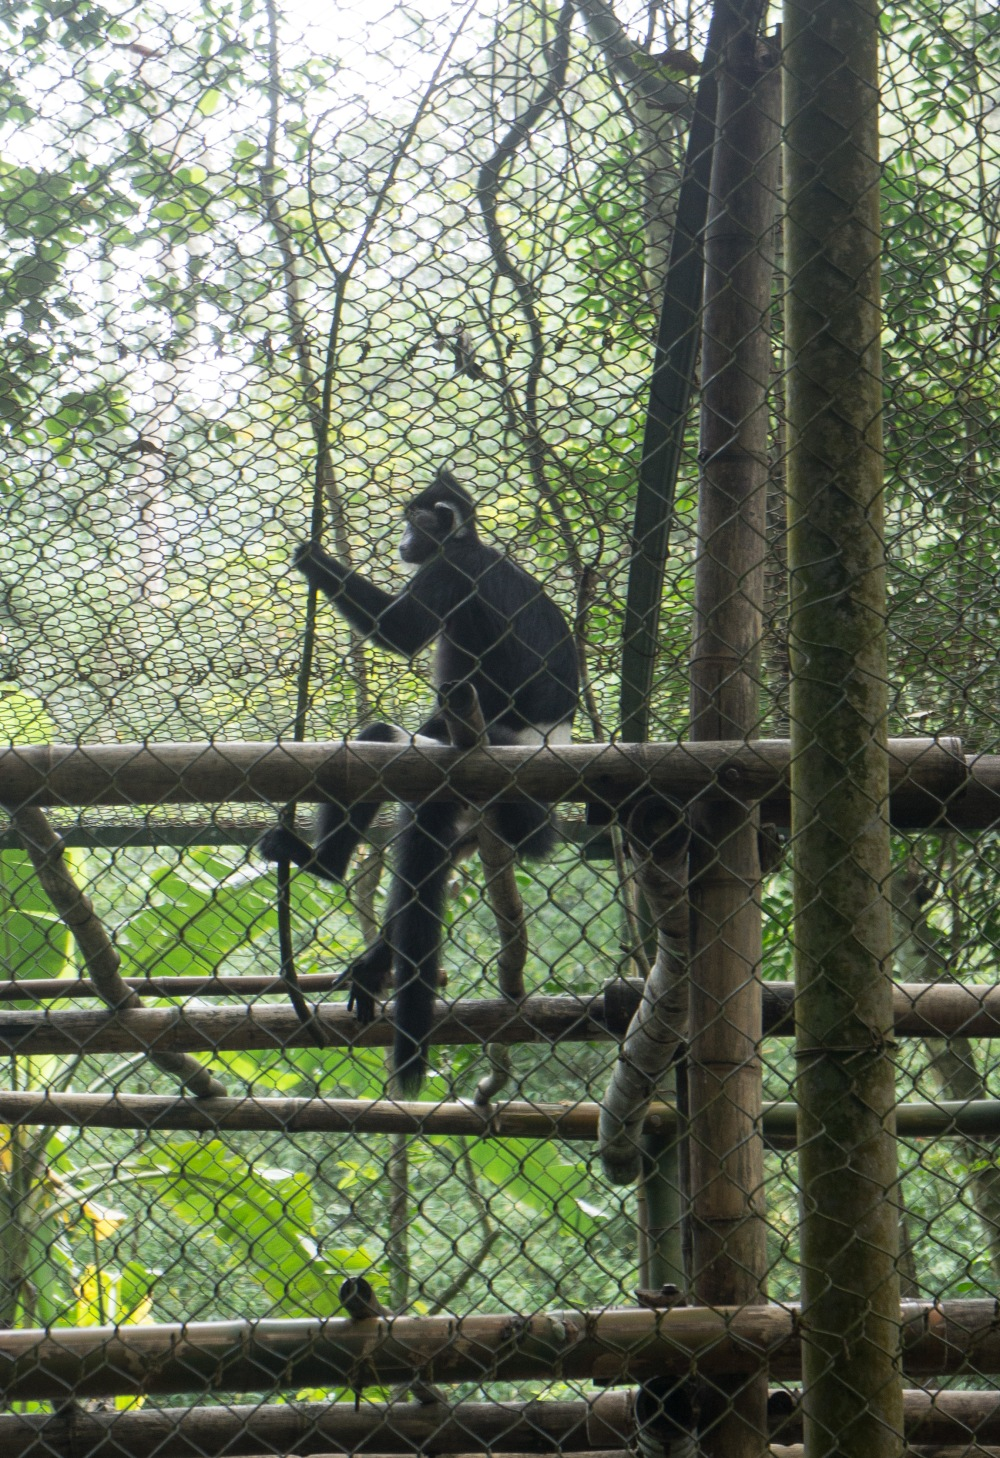 Langur in the Endangered Primate Research Center in Cuc Phuong National Park